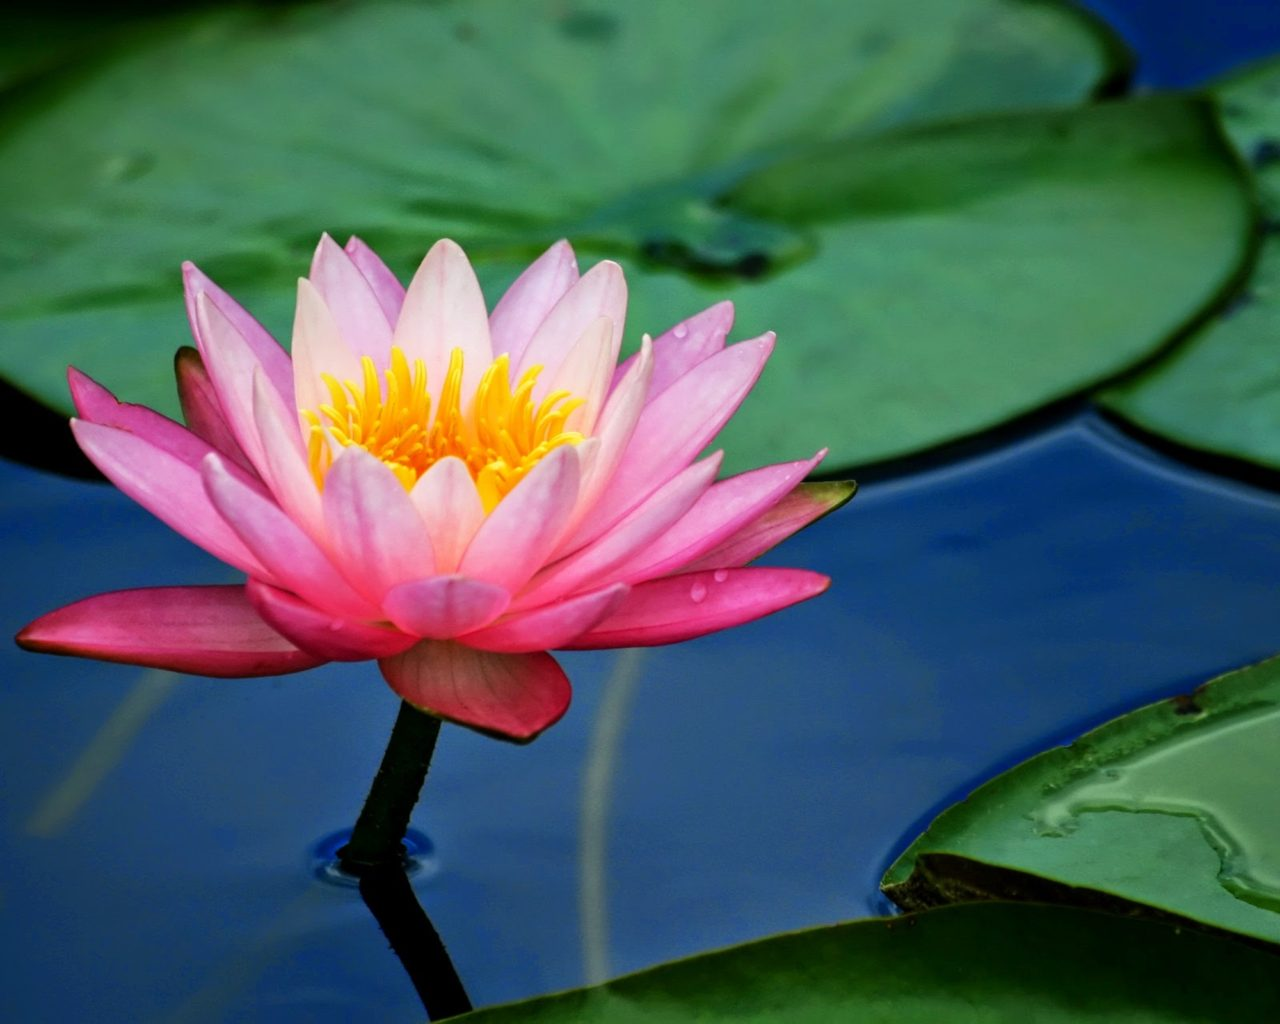 Colorful Iphone Wallpaper Flower Pink Lotus Flower And Lily Pads 2560x1600